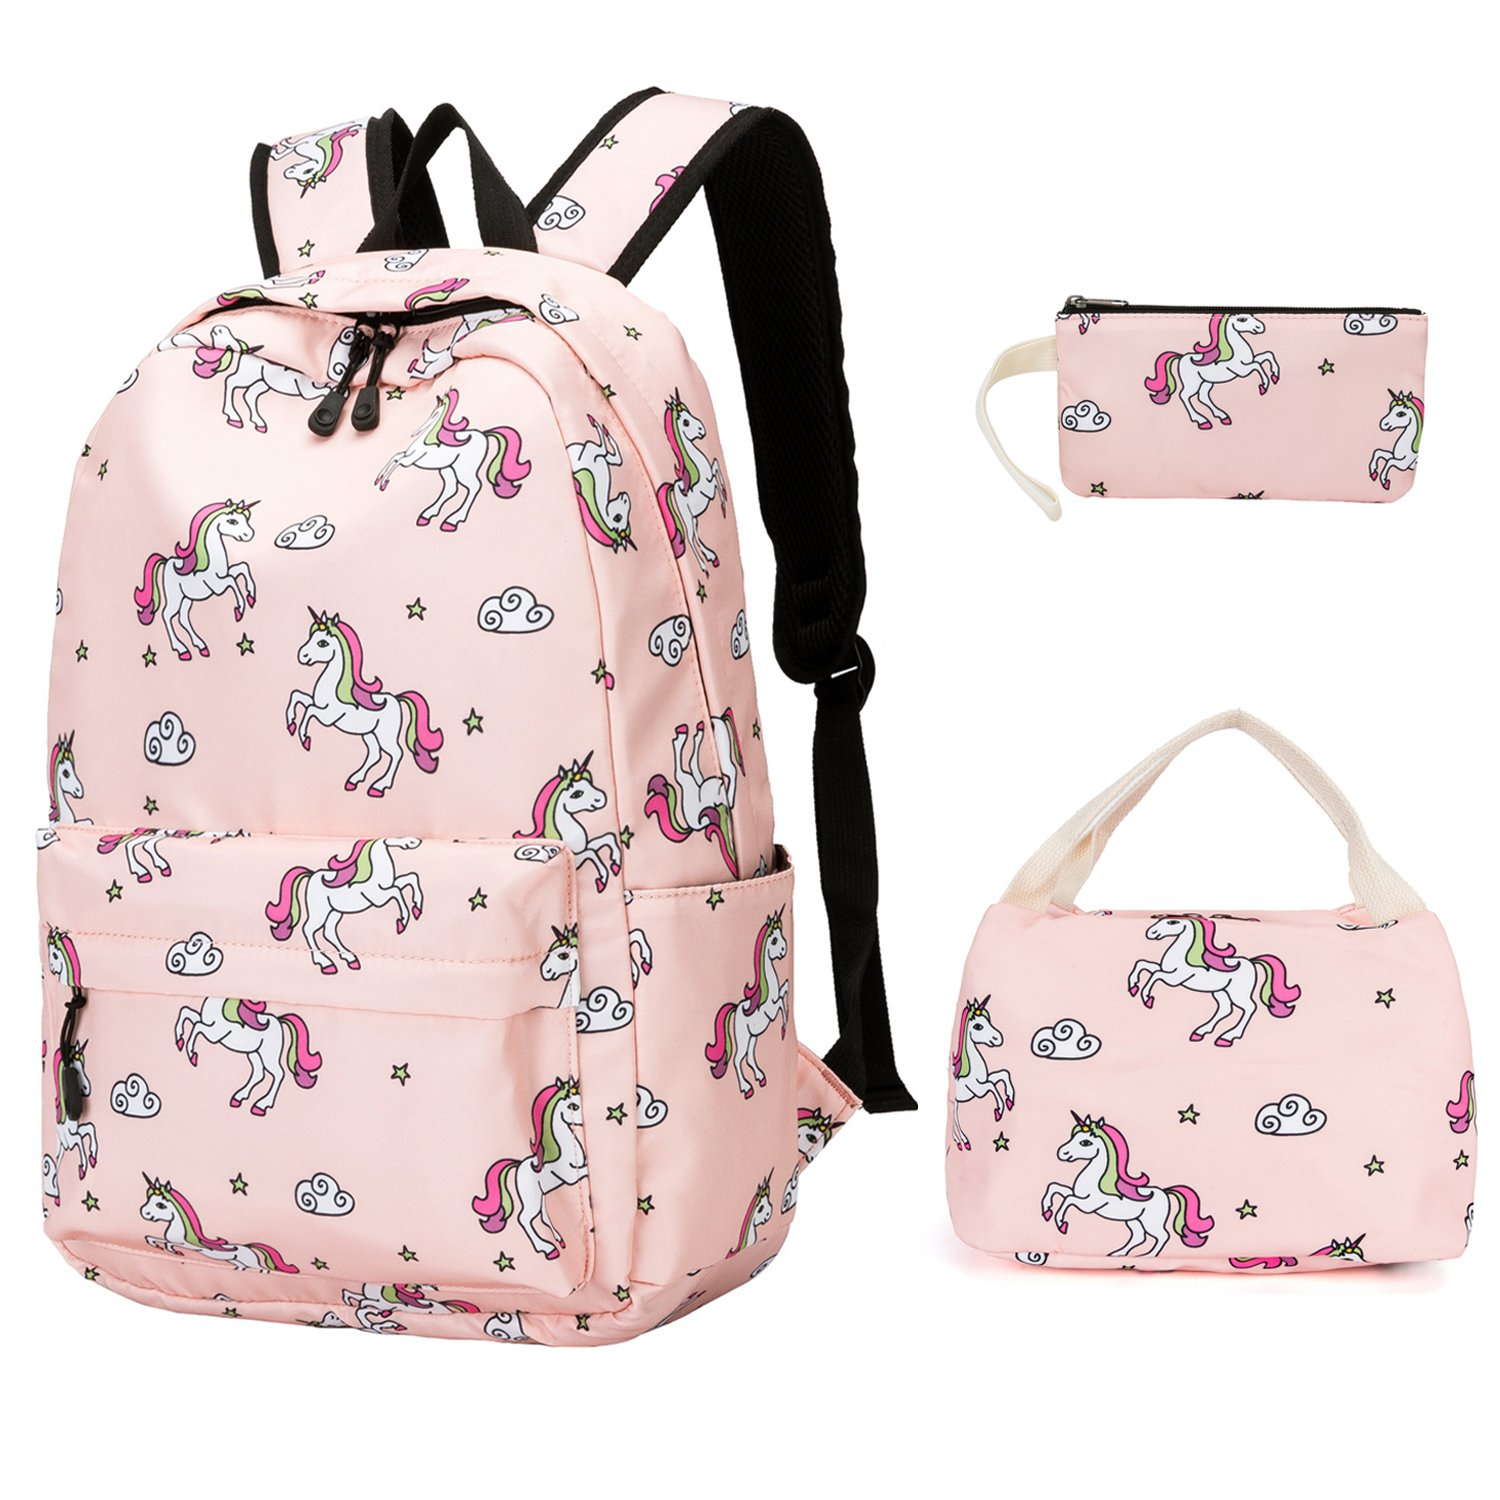 Girls Backpack For School Teens Bookbag Cute Backpack Set Water Resistant School Bag (Pink)